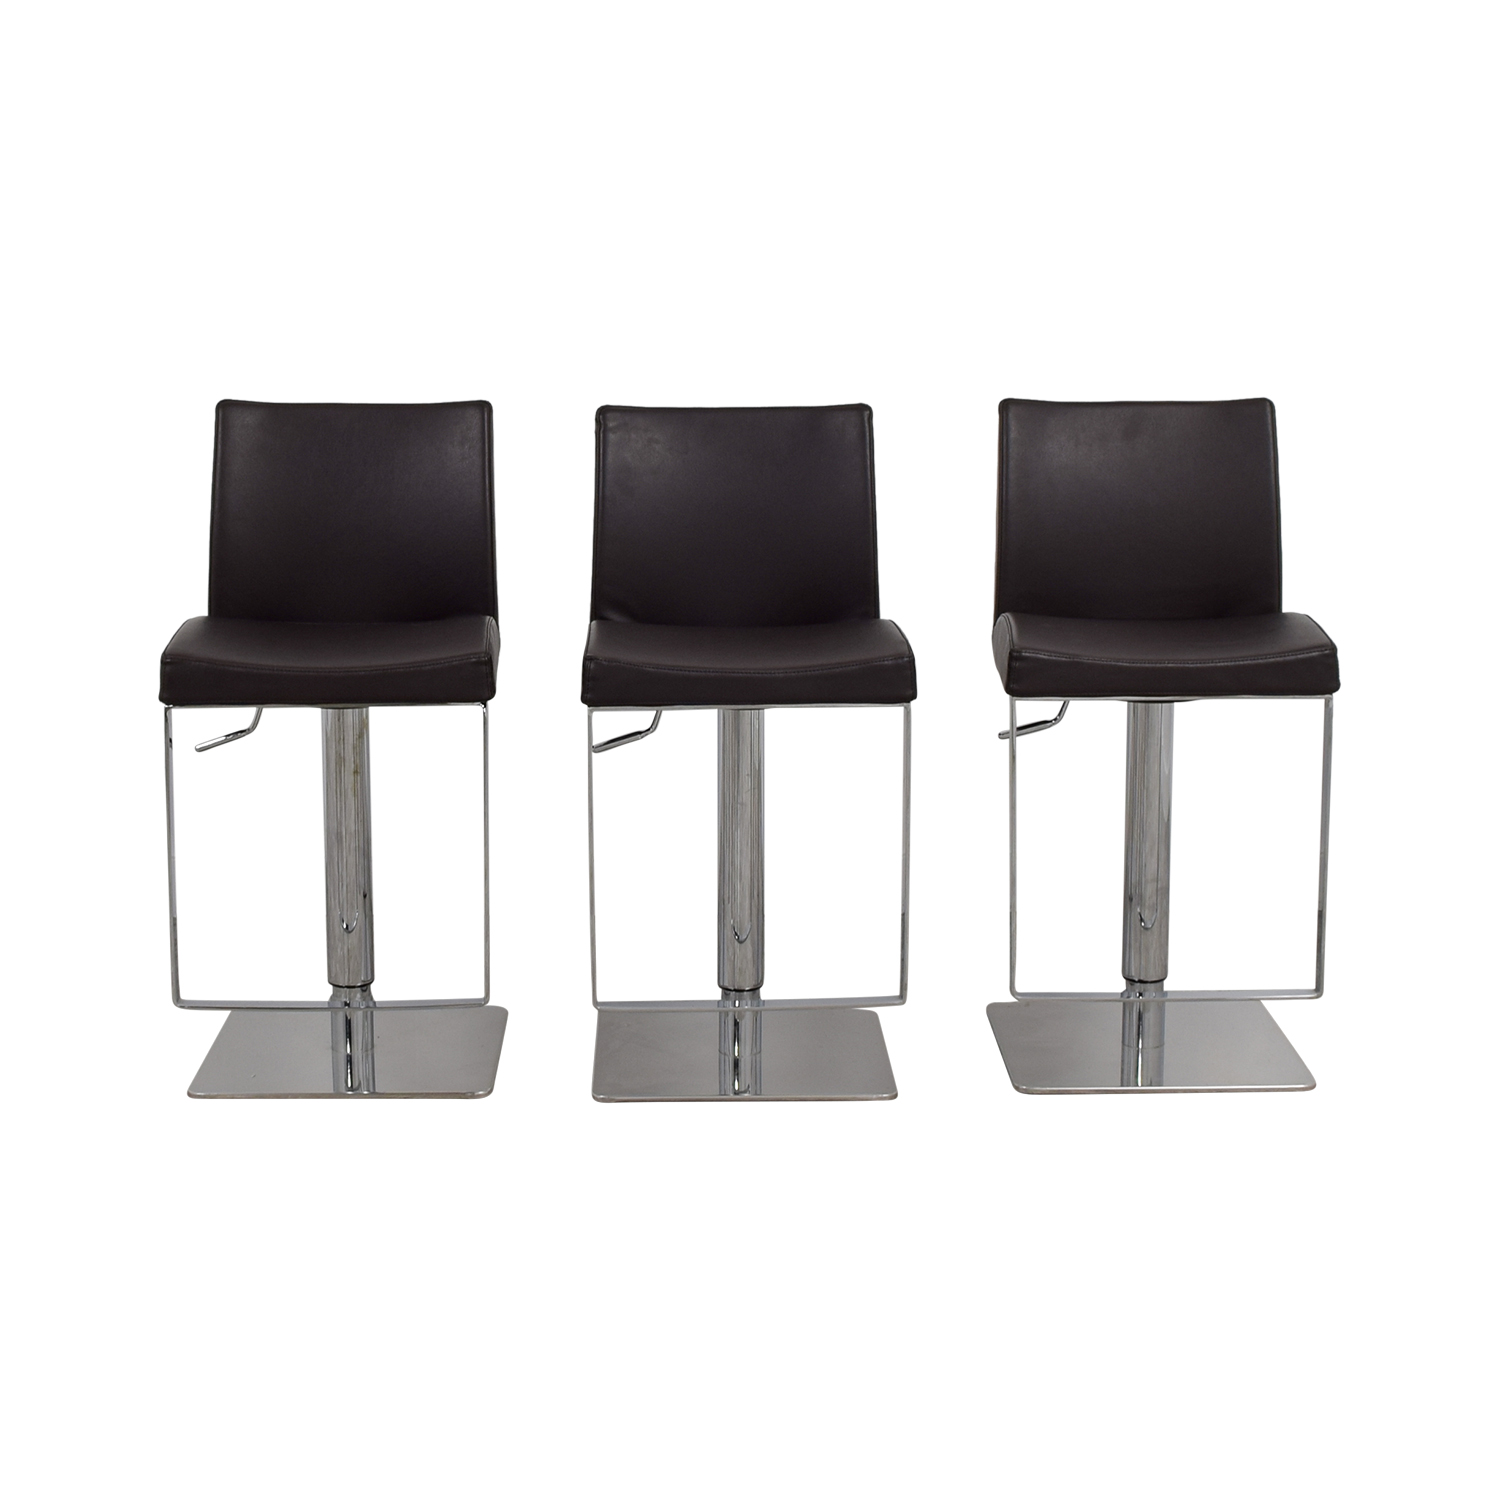 shop Modani Modani Bellagio Brown Leather Adjustable Bar Stools online